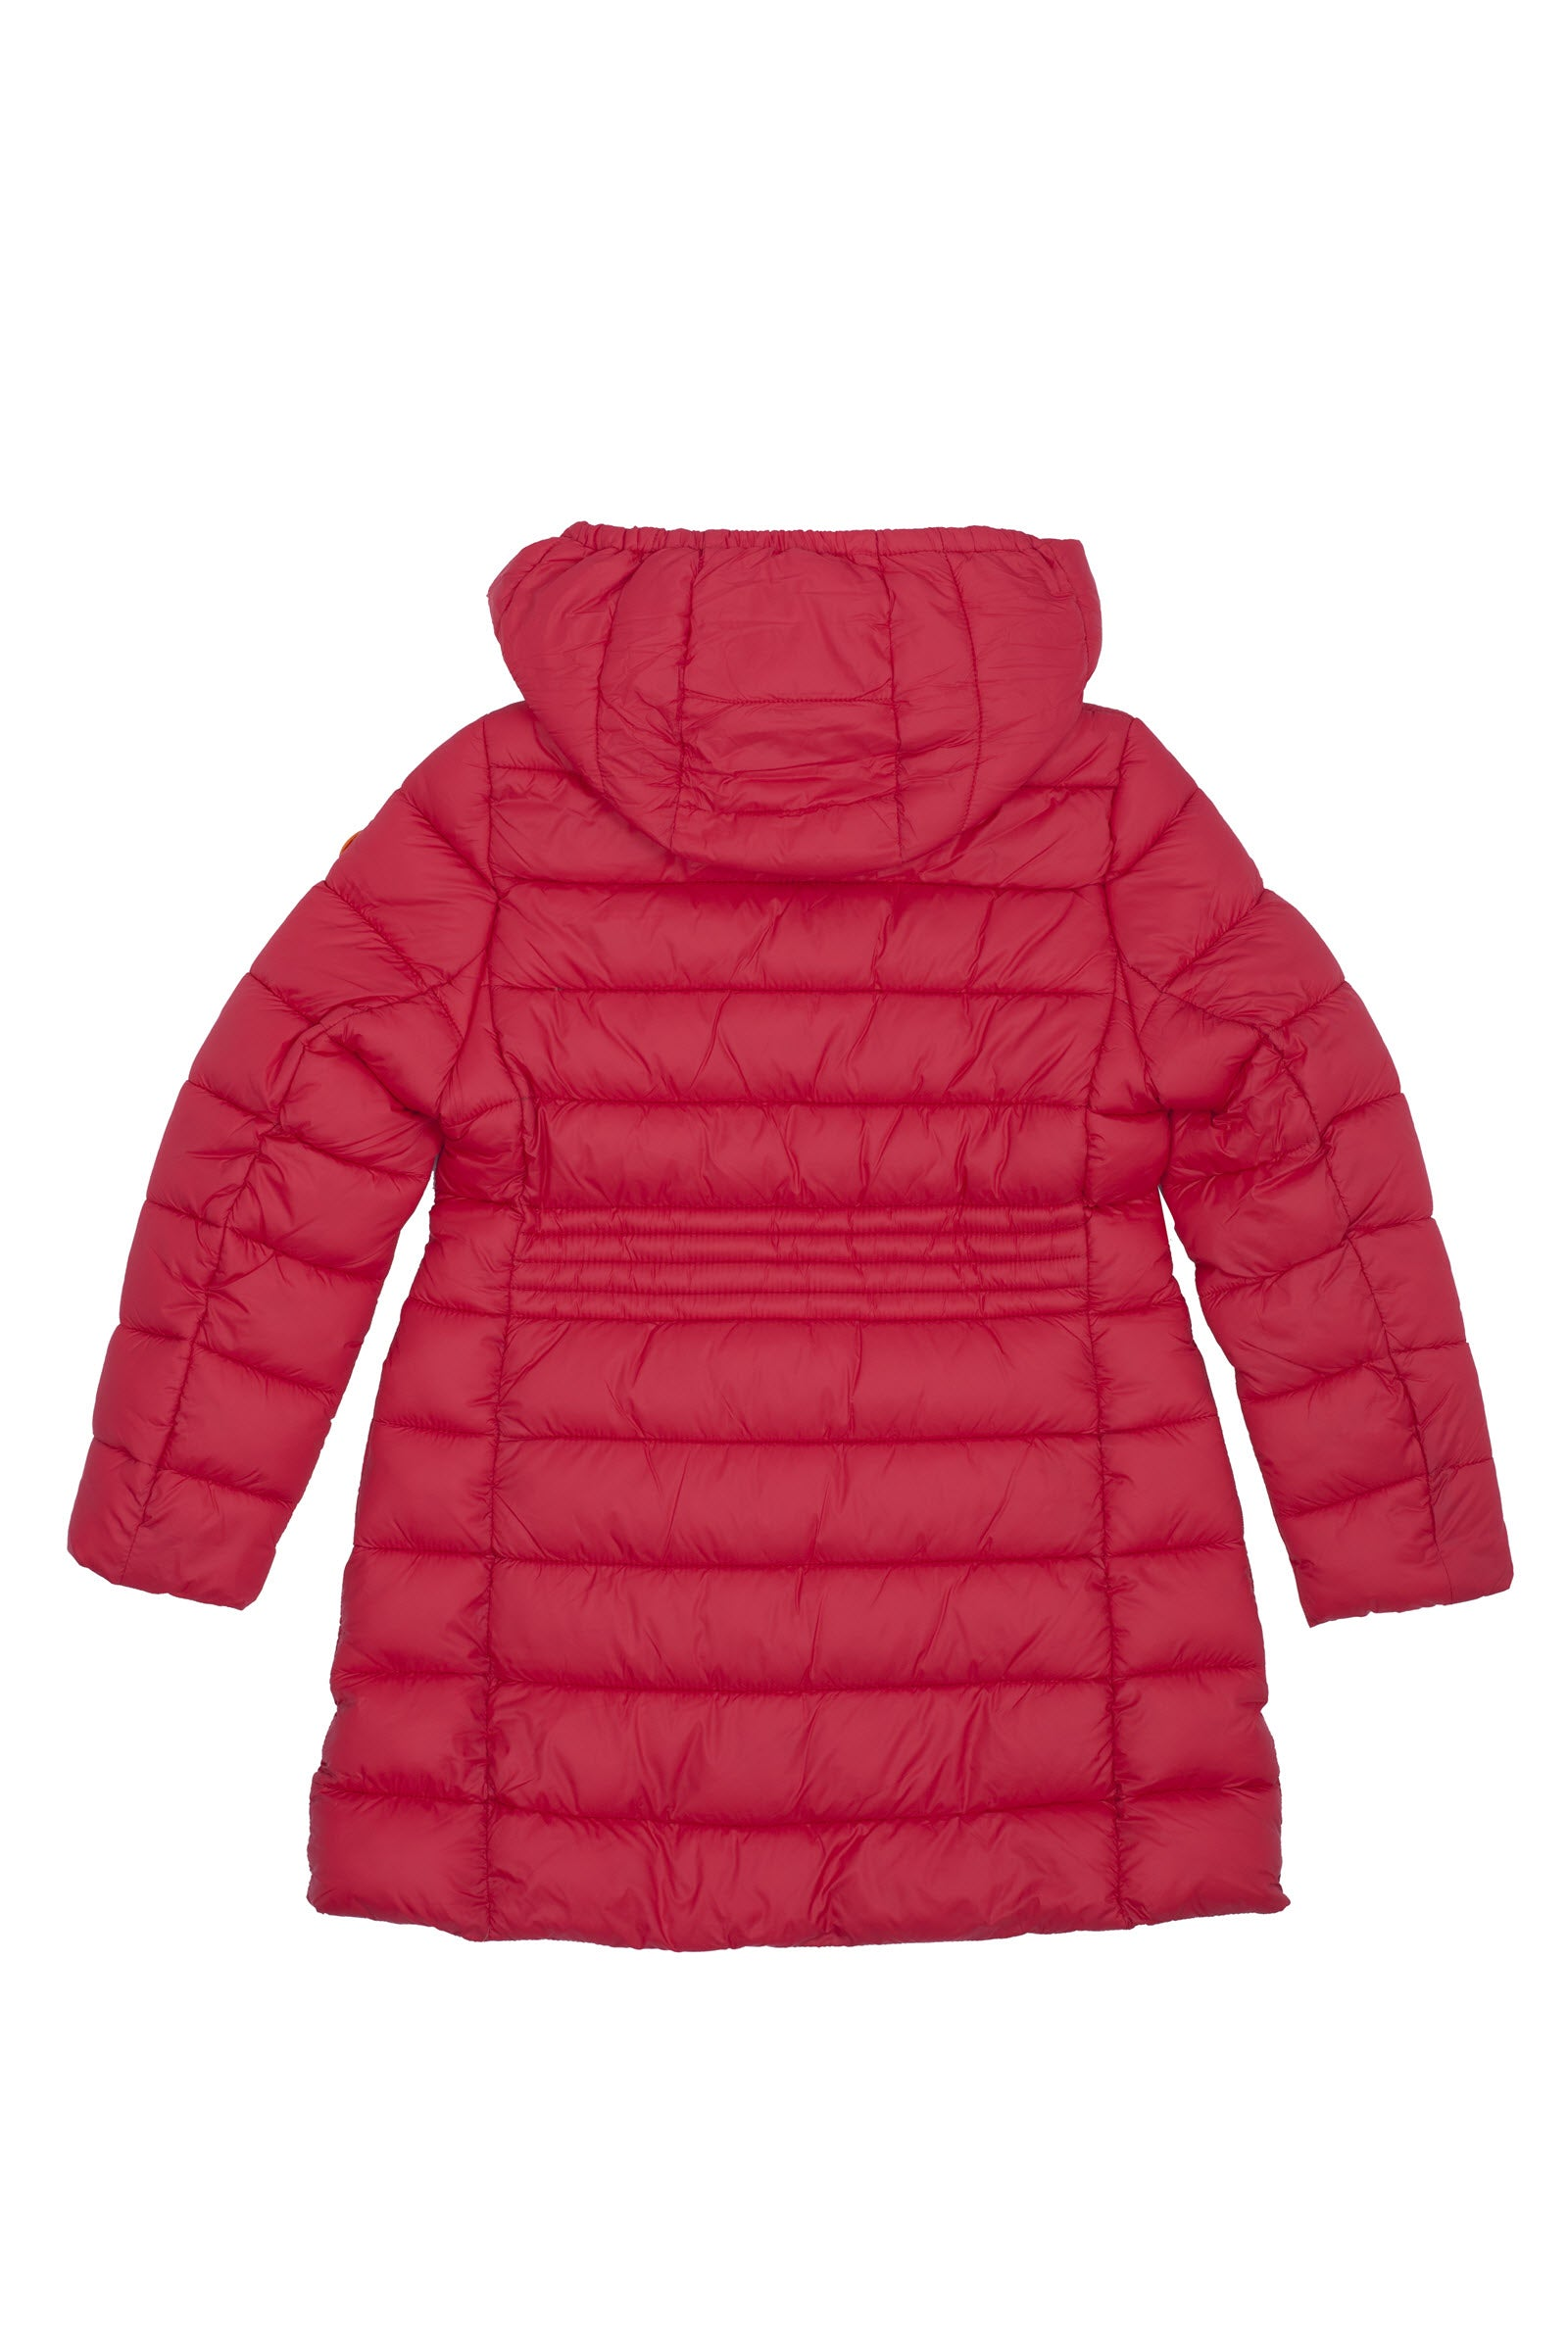 Girl's Puffer Coat in Cranberry Red